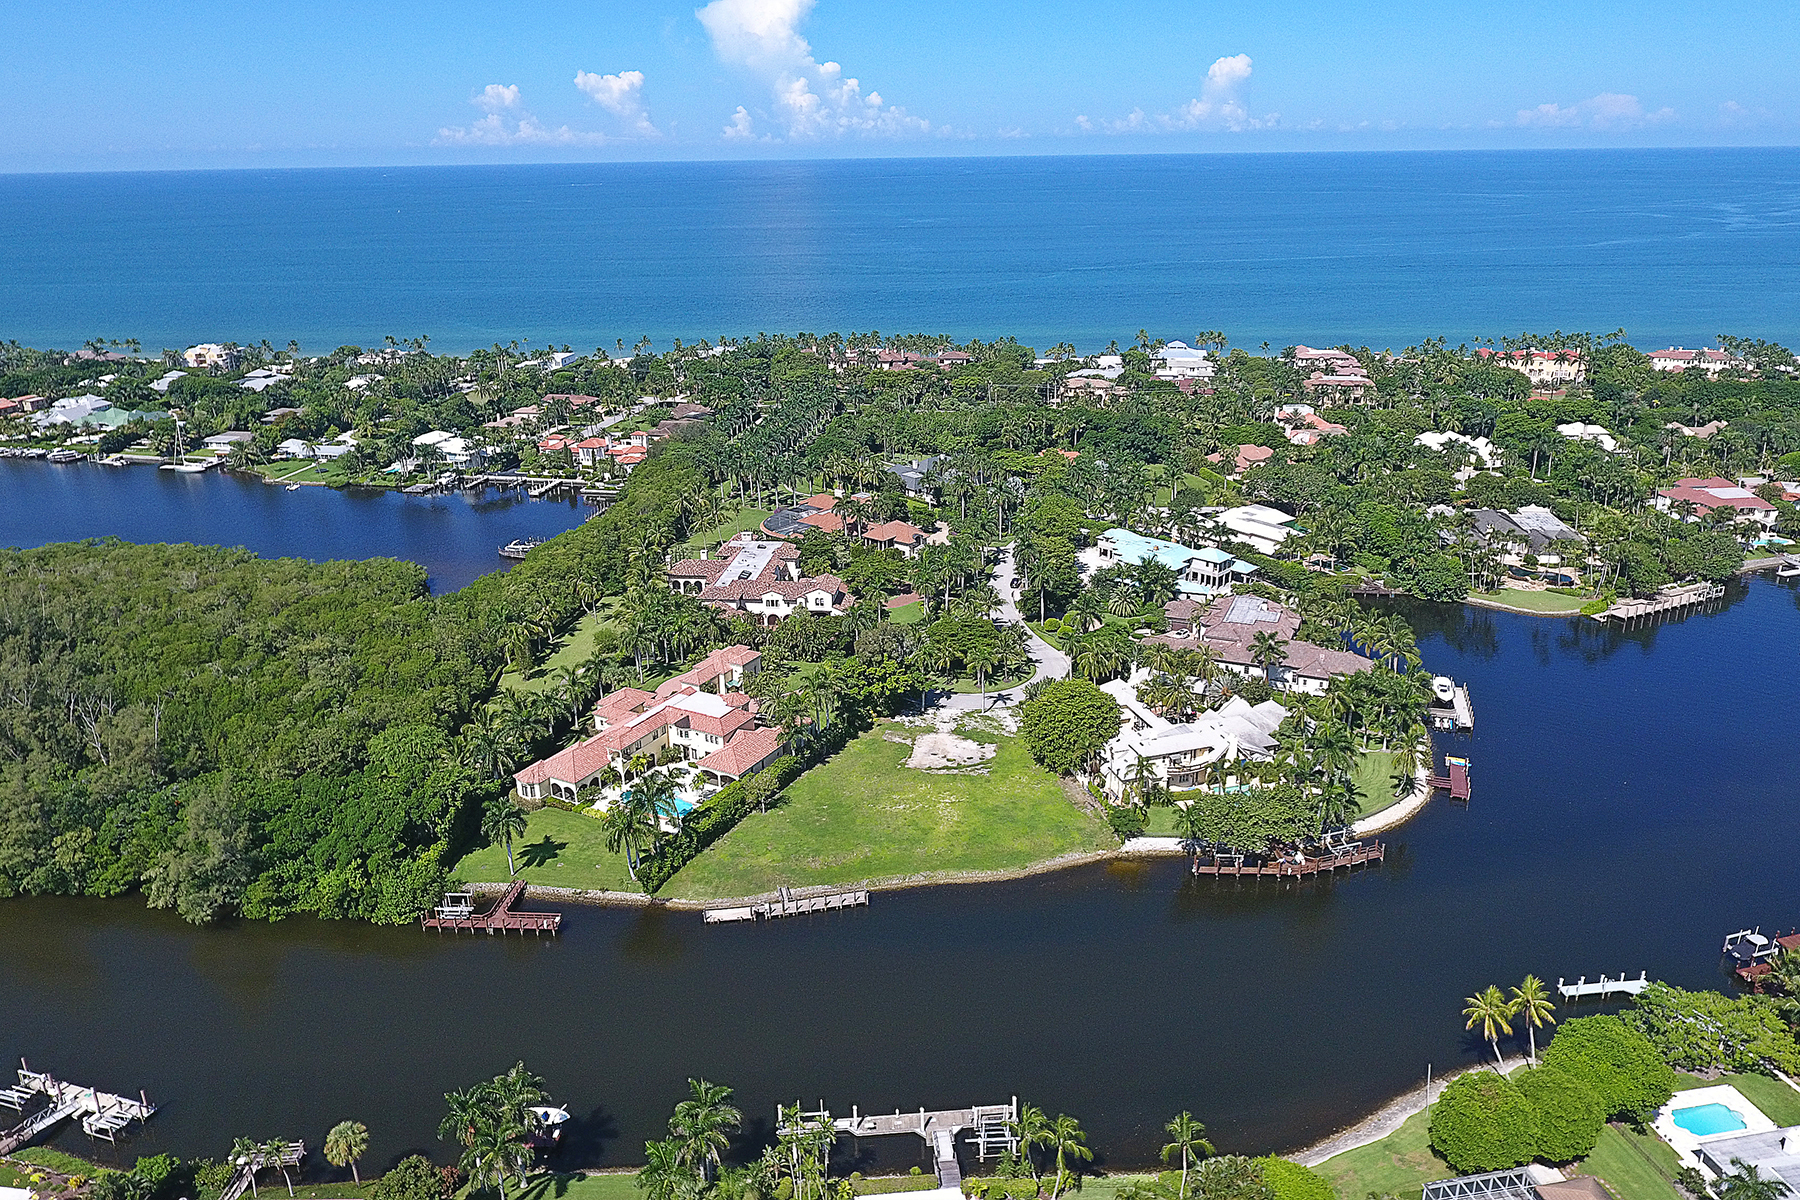 Terreno por un Venta en PORT ROYAL 3300 Green Dolphin Ln Naples, Florida, 34102 Estados Unidos